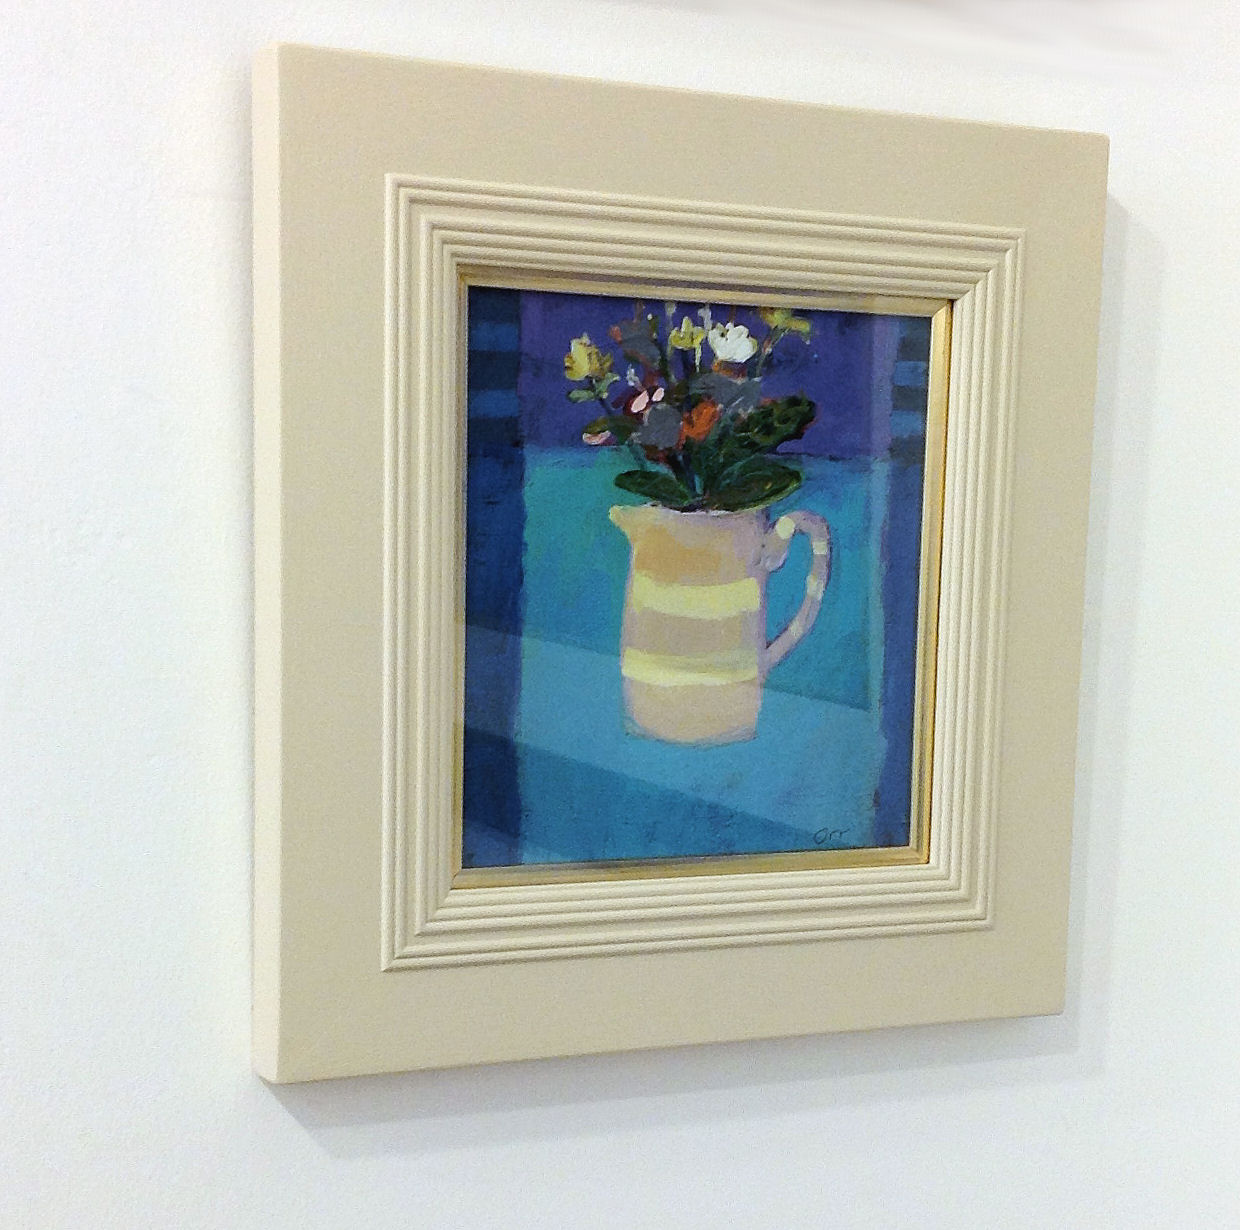 'Stripey Jug and Flowers' by artist Kevin Hutchison-Orr